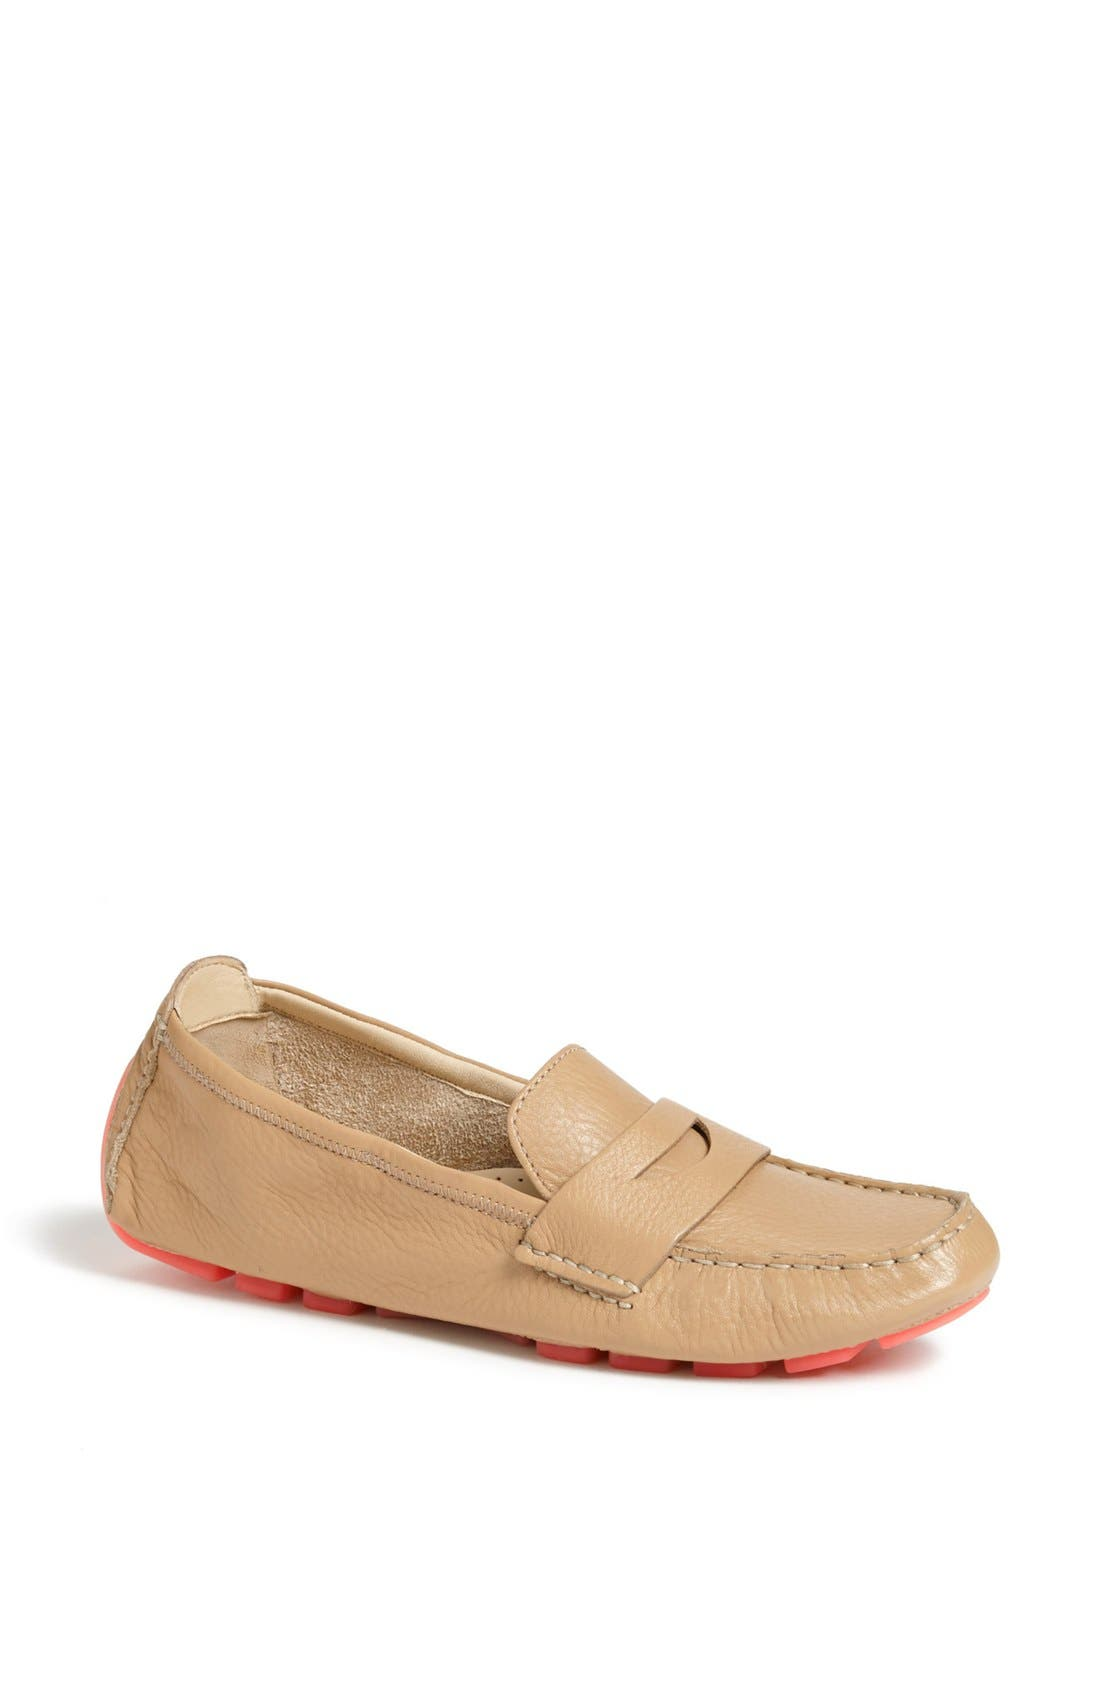 Main Image - Cole Haan 'Sadie Deconstructed' Moccasin